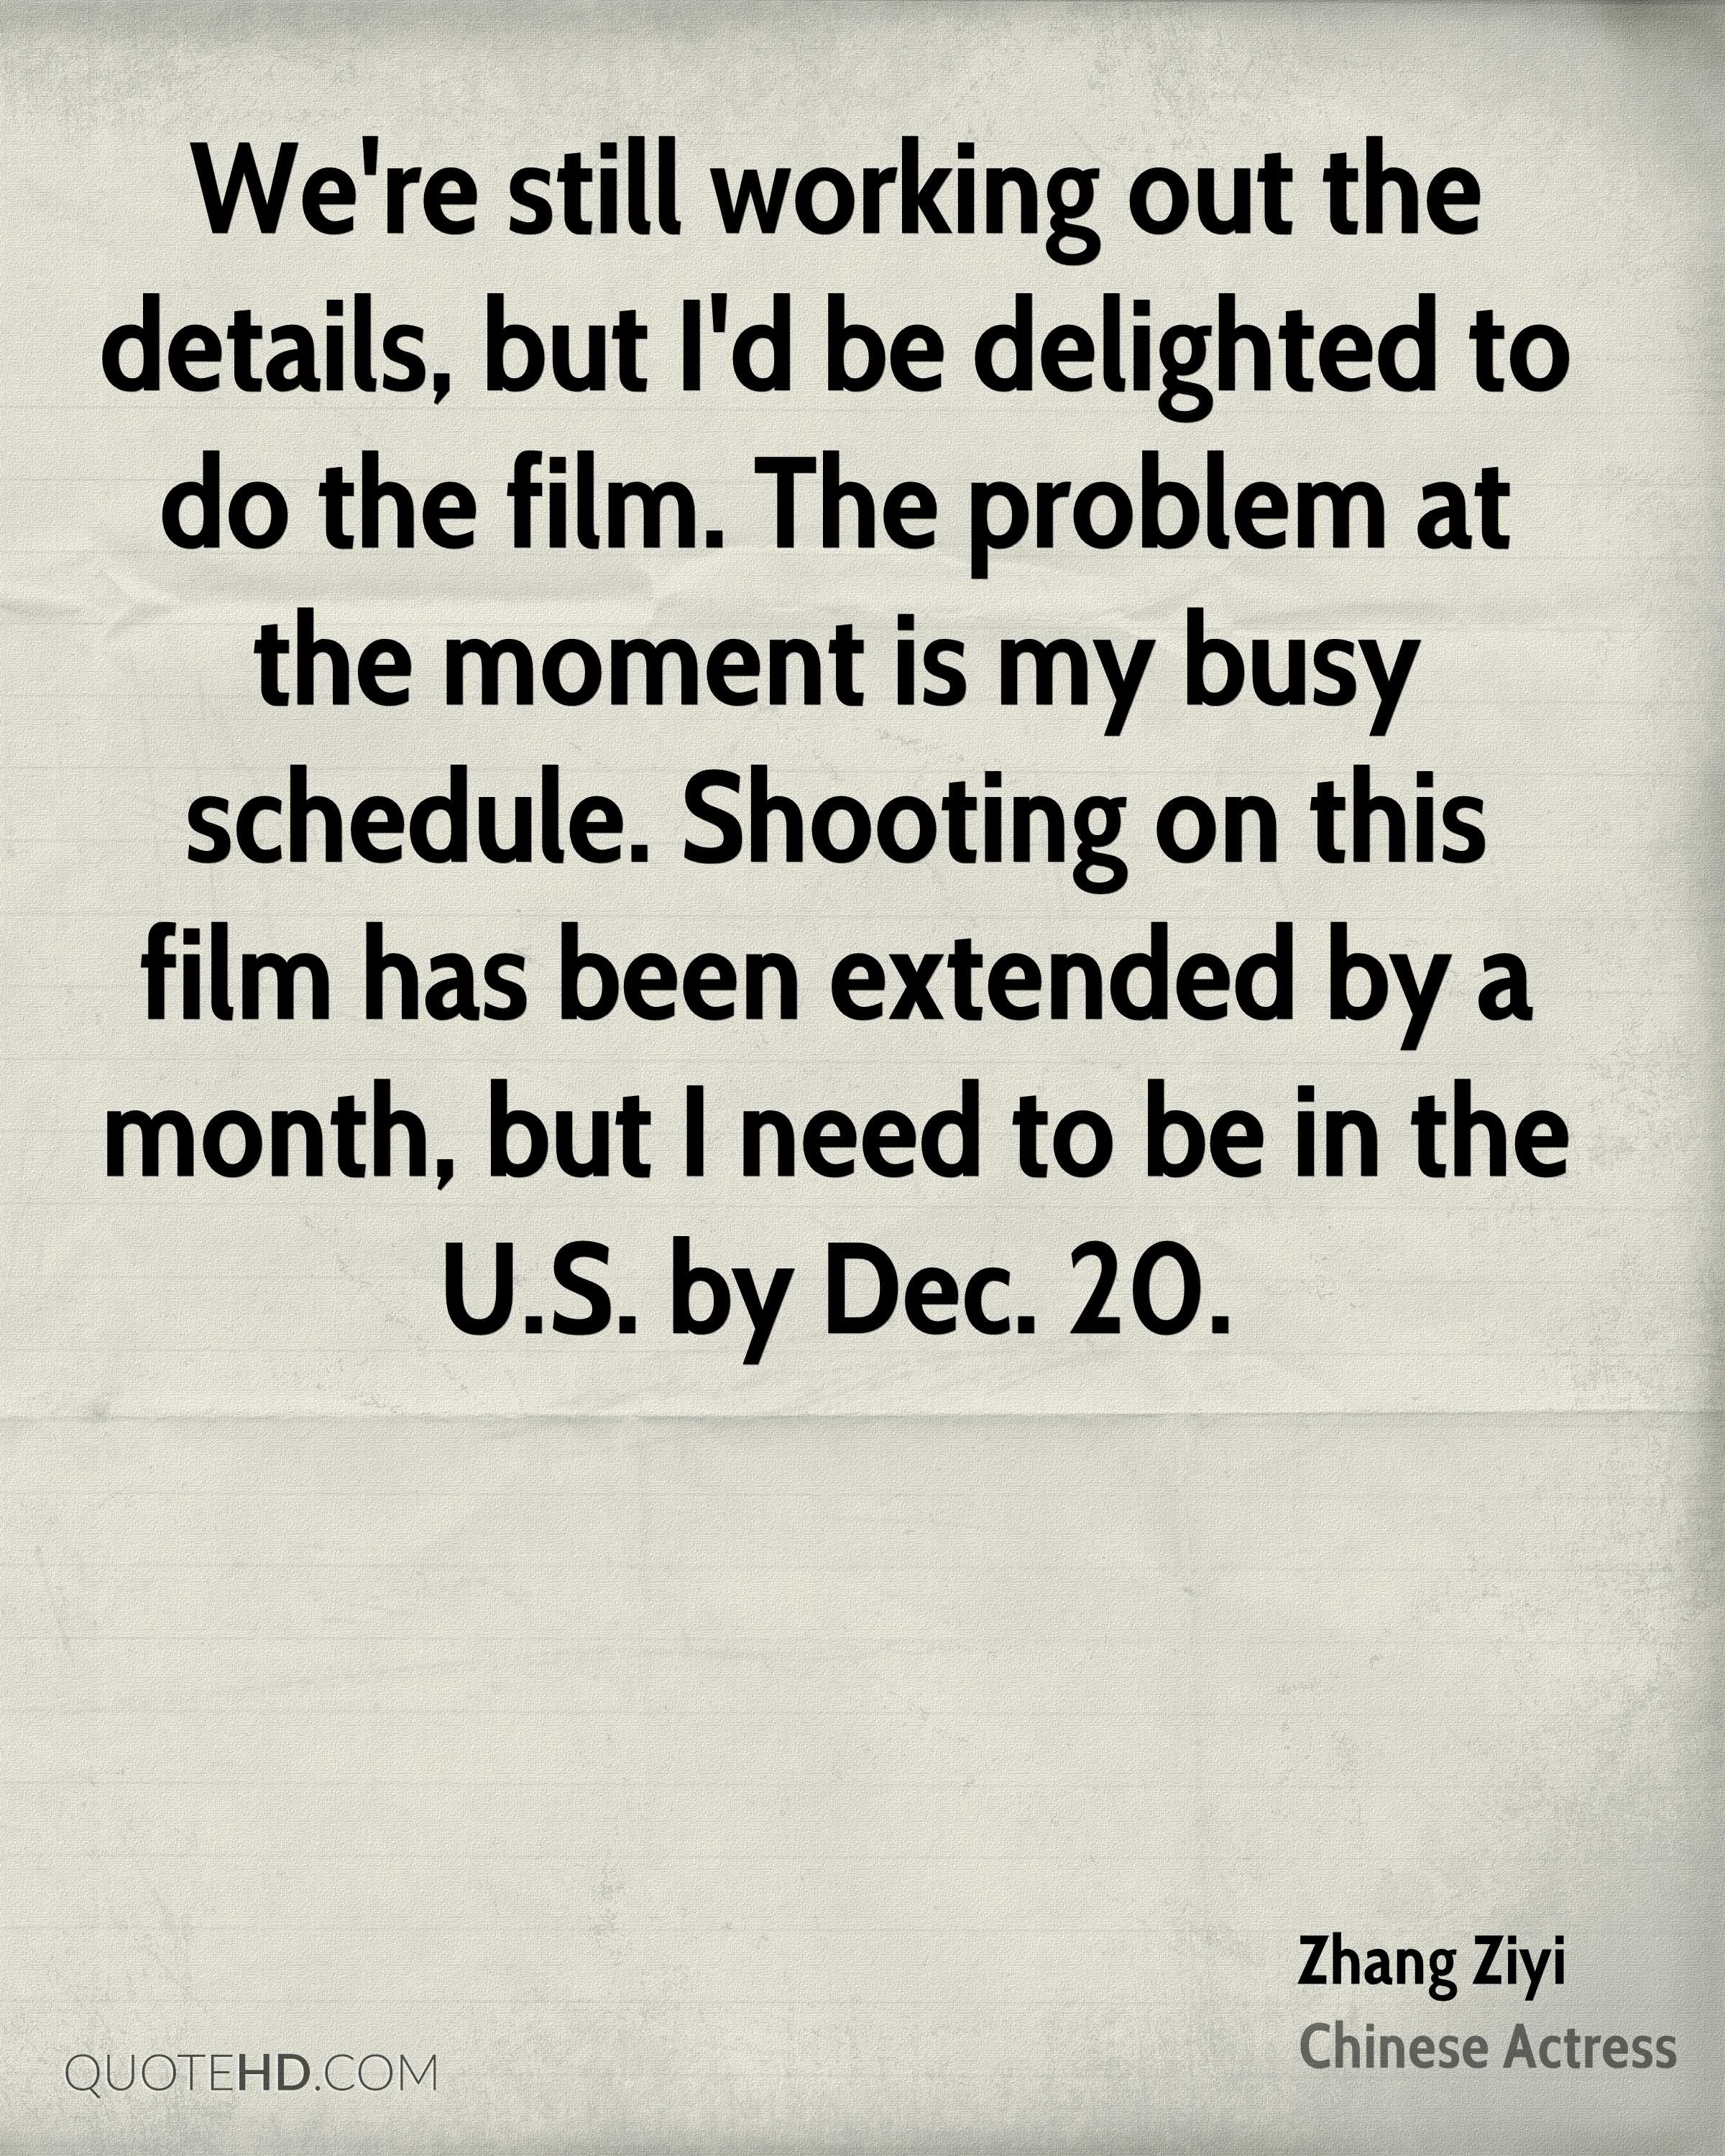 We're still working out the details, but I'd be delighted to do the film. The problem at the moment is my busy schedule. Shooting on this film has been extended by a month, but I need to be in the U.S. by Dec. 20.